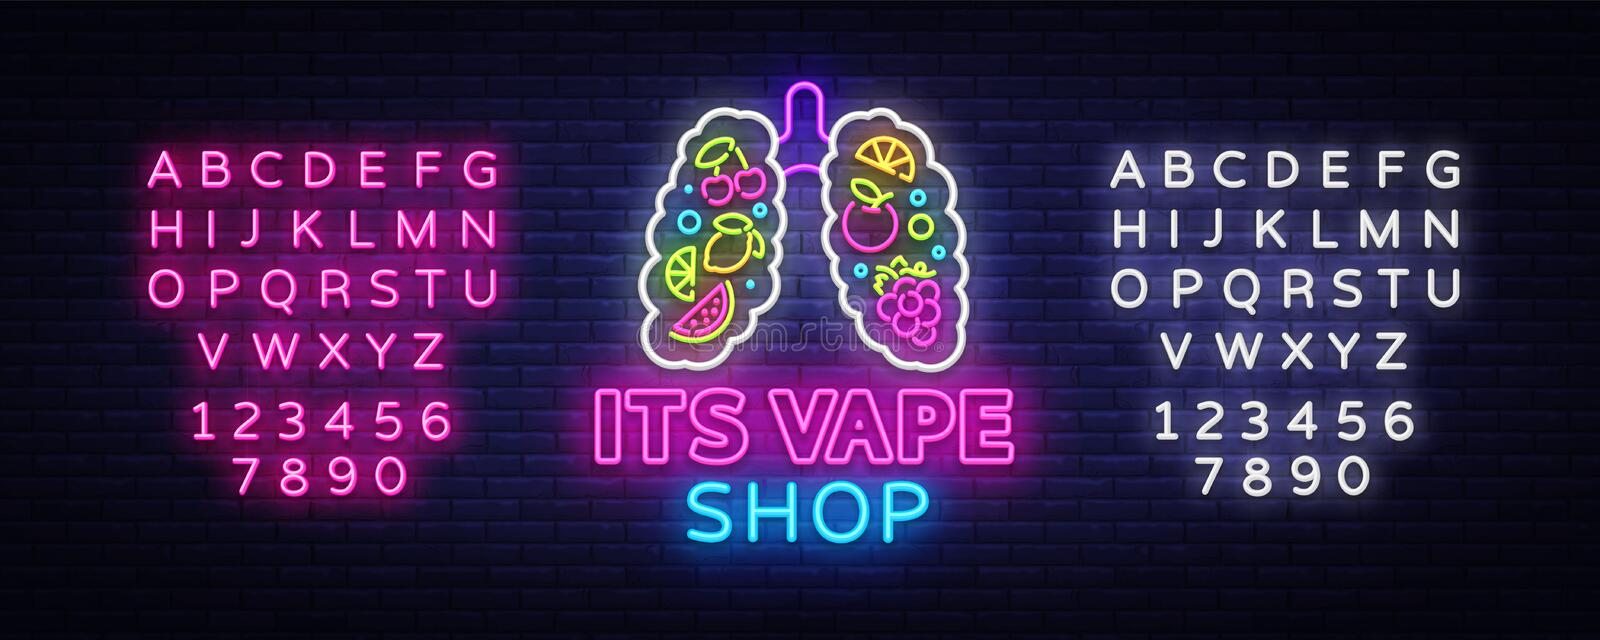 Vape shop neon sign vector. Vaping Store Logo Emblem Neon, Its Vape Shop Concept With Lungs and Fruits, Fighting Smoking stock illustration